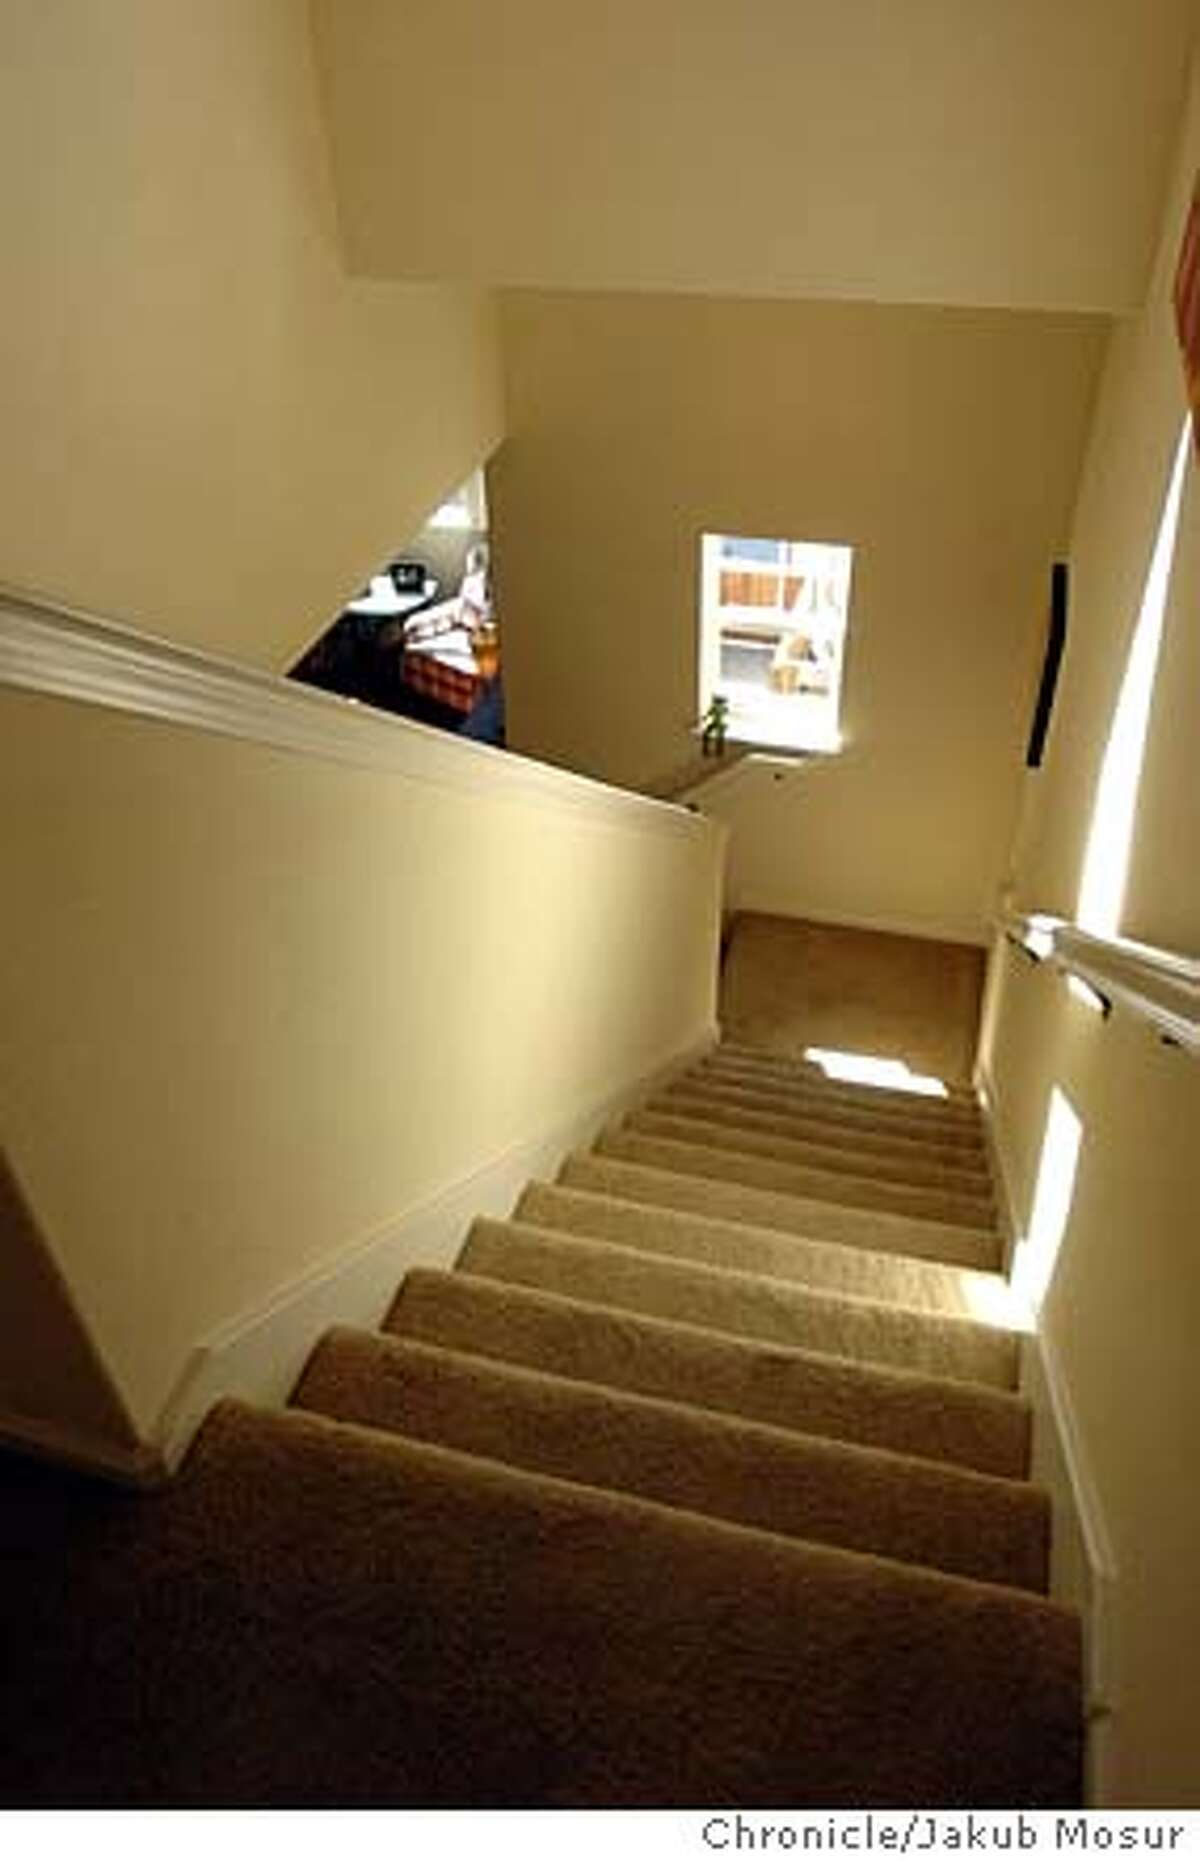 A staircase inside a Plan C model home at the Cotati Station on 9/2/04 in Cotati. JAKUB MOSUR / The Chronicle